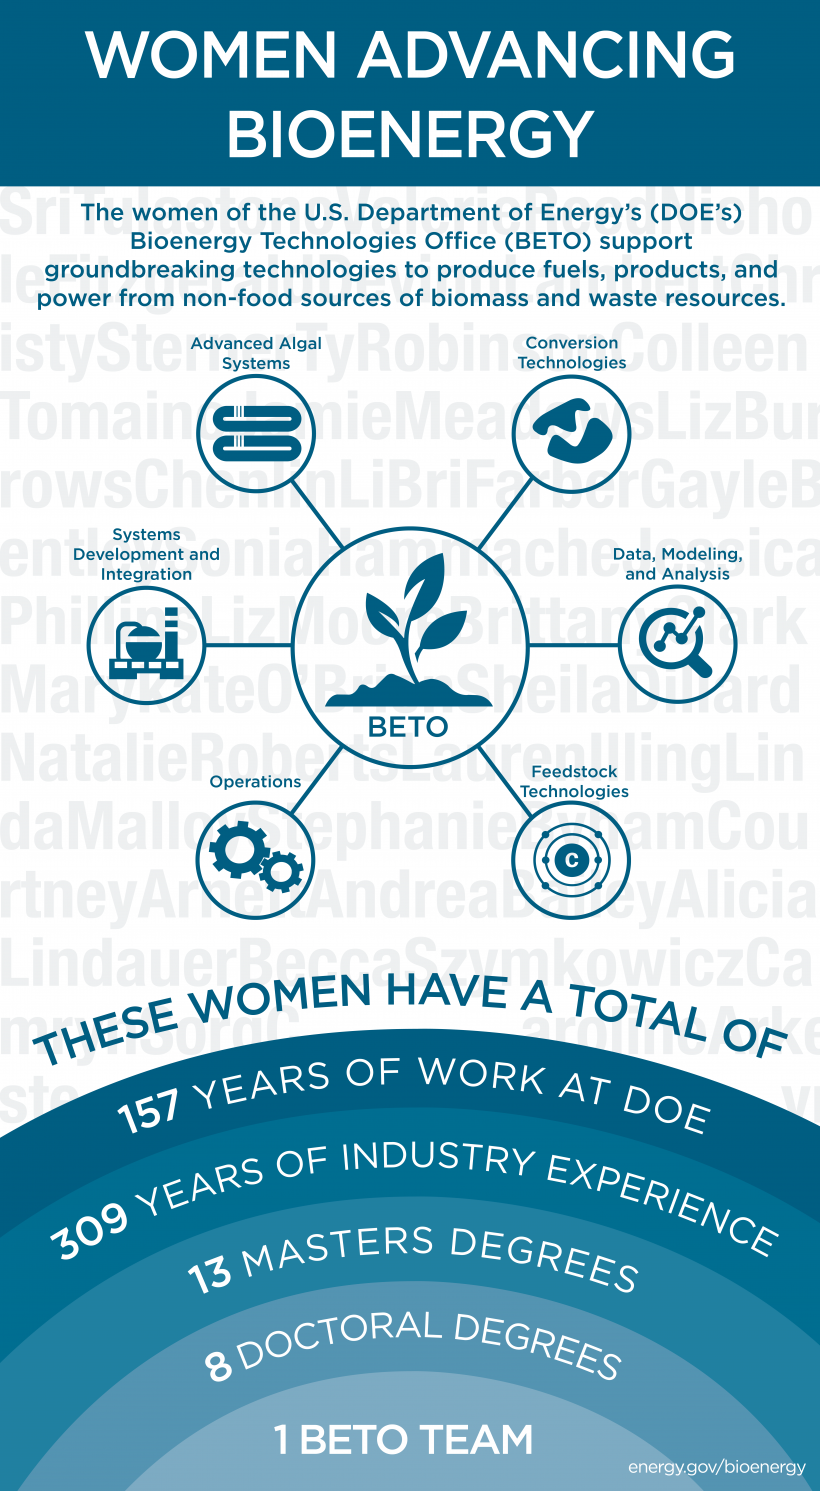 Women Advancing Bioenergy infographic. The women of the US Department of Energy's Bioenergy technology office support ground breaking technologies to produce fuel, products and power from non-food source of biomass and waste recourses.